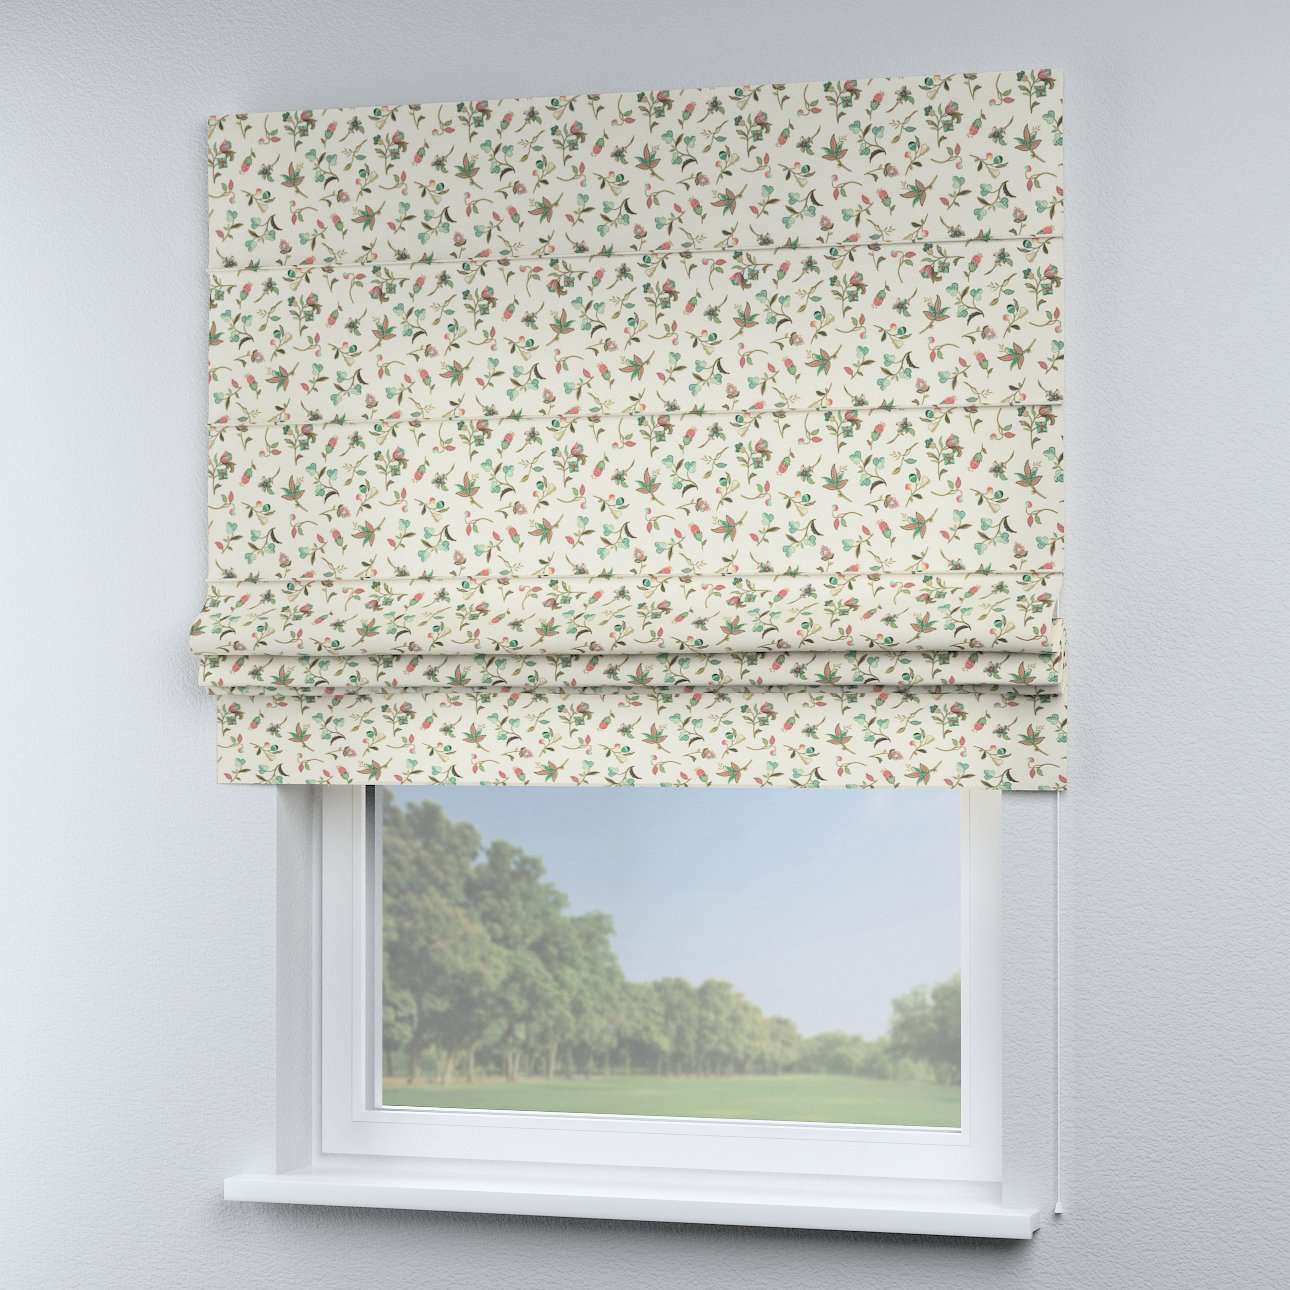 Padva roman blind  80 x 170 cm (31.5 x 67 inch) in collection Londres, fabric: 122-02